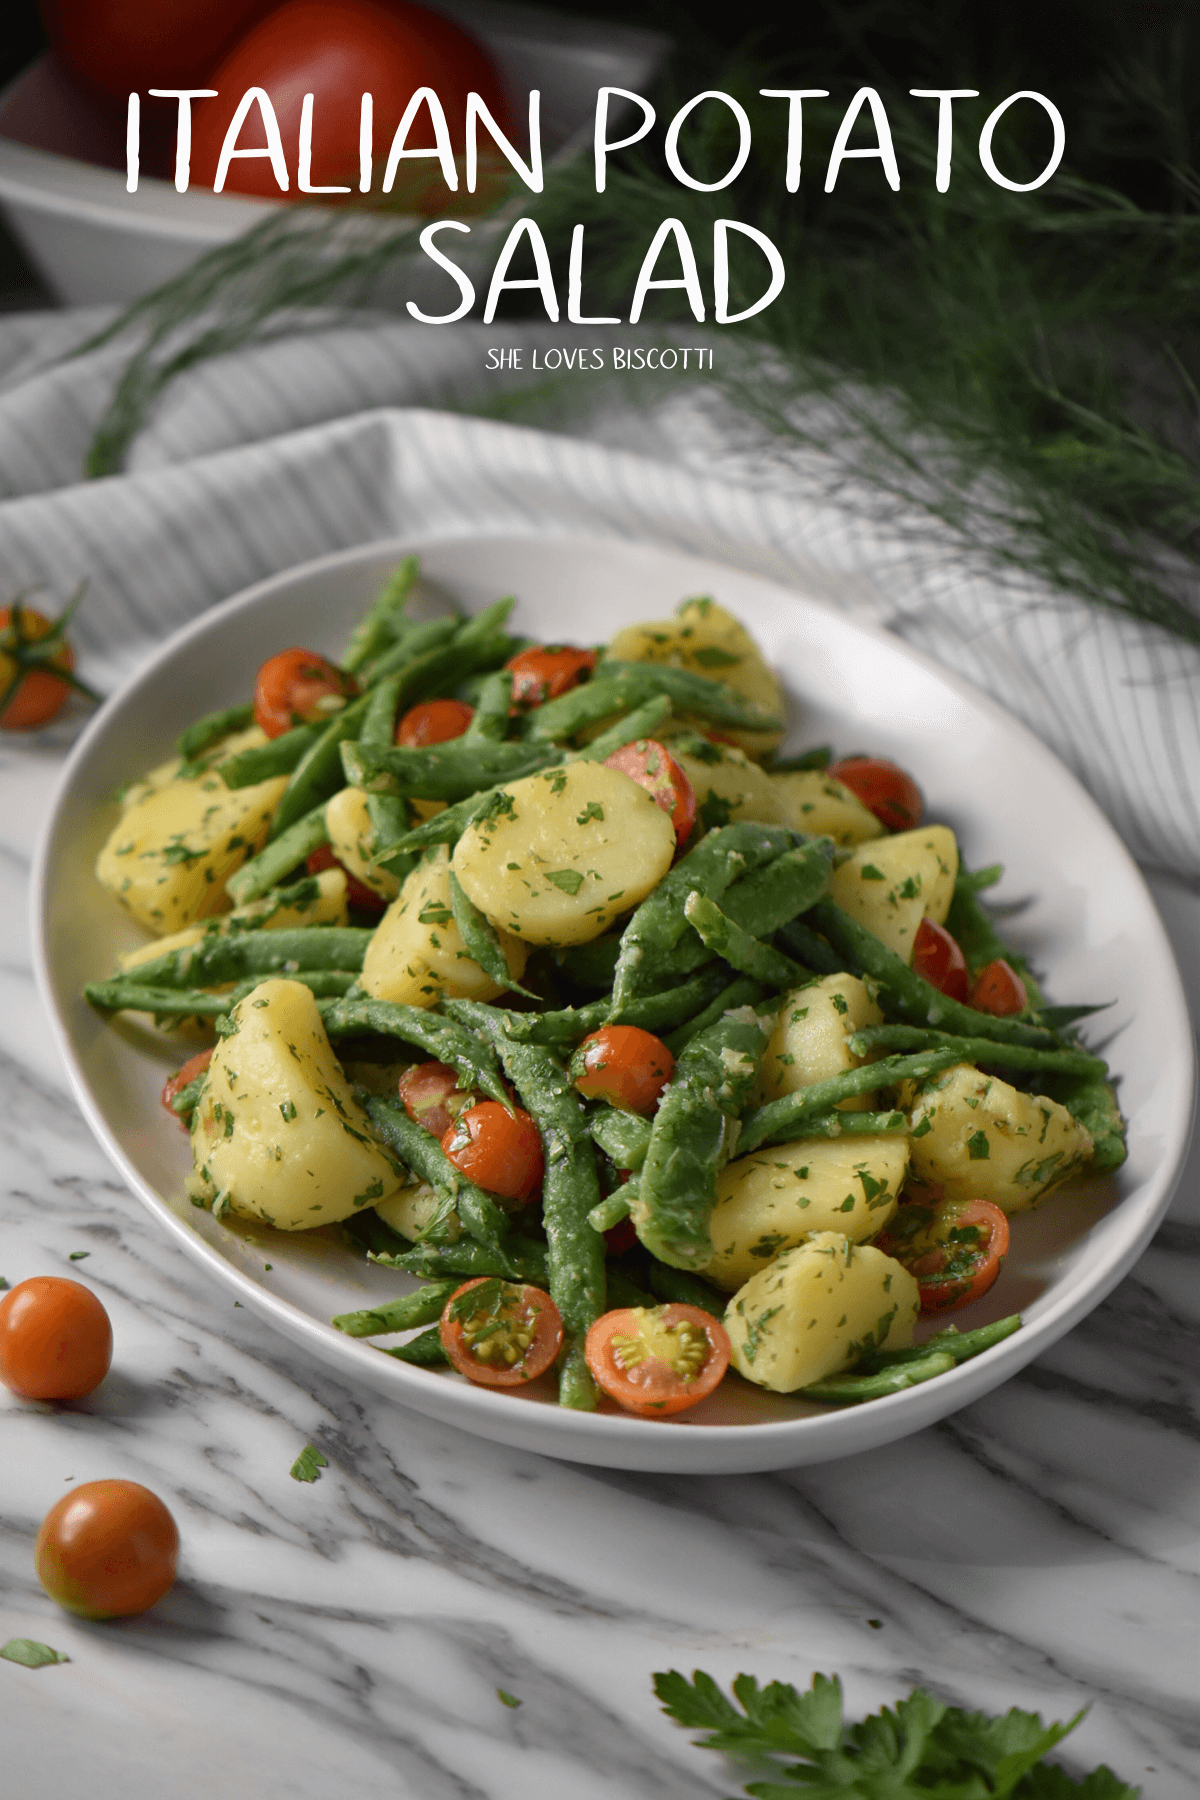 This Italian potato salad with green beans is perfect for summer get togethers. A crowd pleasing salad that is so easy to make! #shelovesbiscotti #potatosalad #Italiansalad #Italianpotatosalad #greenbeans #potluck #BBQ #nomayosalad #vegansalad #greenbeans #cherrytomatoes #parsley ##summersalad #potlucksalad